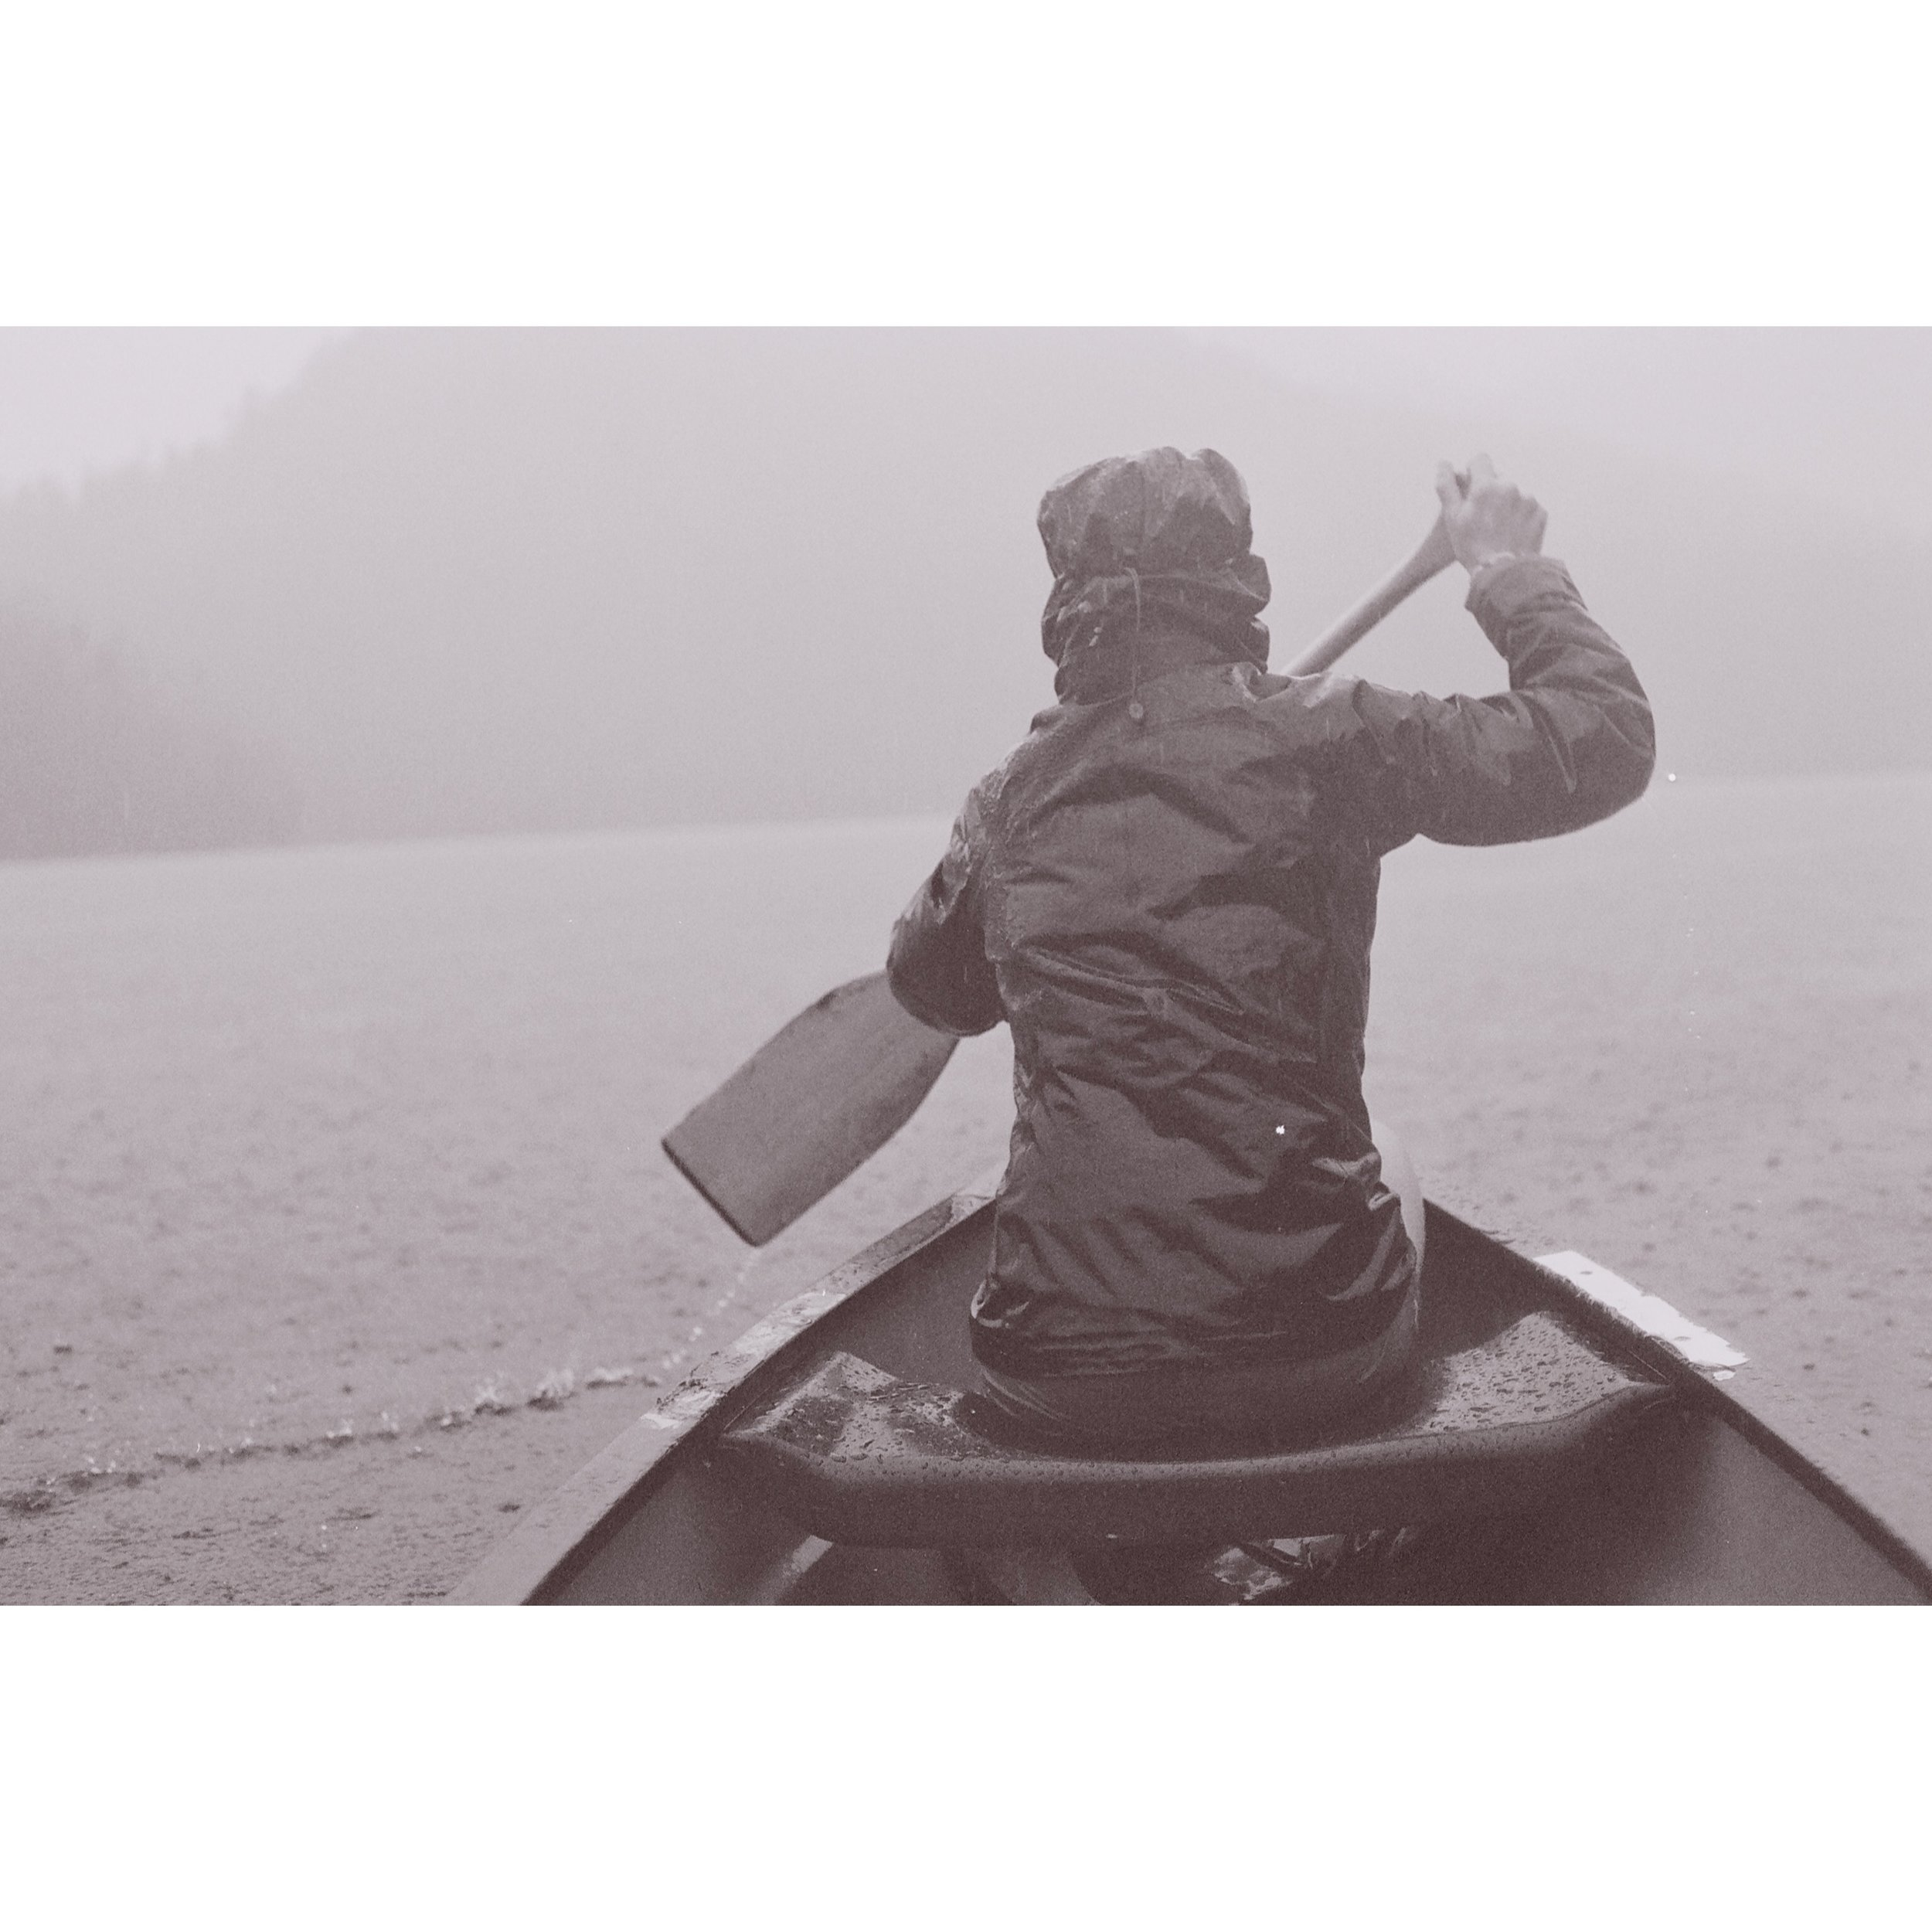 PADDLE YOUR OWN CANOE! Maggie Mac is a full-time Mom, Support Worker, Graduate Student, and Adventurer. What does YOUR best life look like? Reach out to join the team!